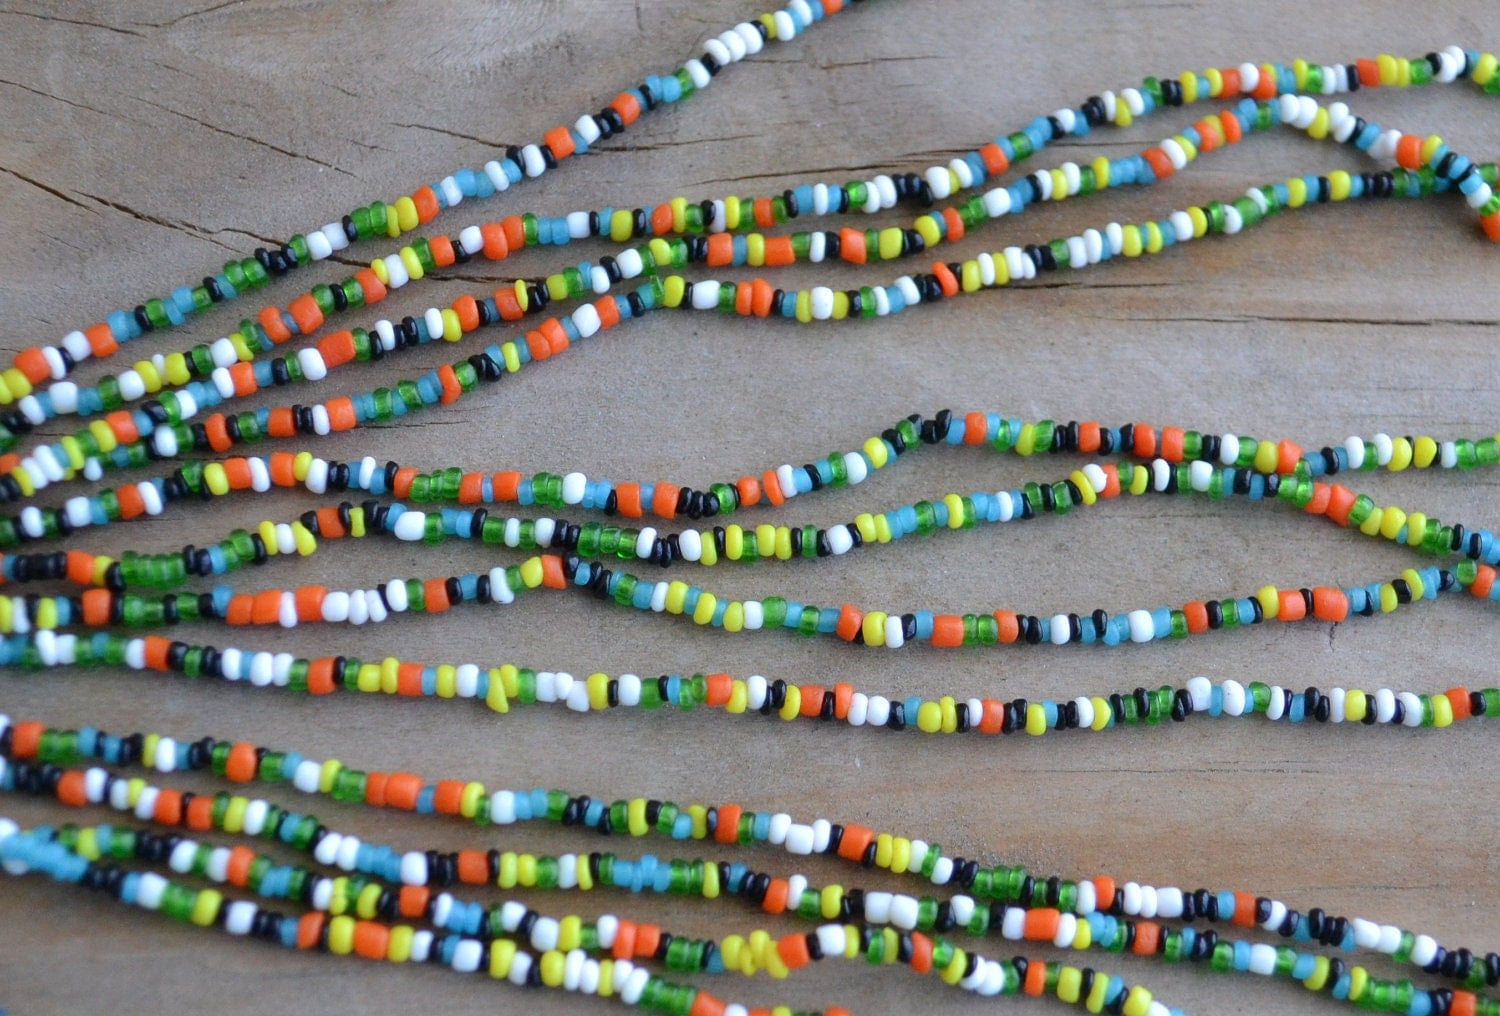 Hold For Annegenuine 60s Hippie Beads Seed Beaded Necklaces